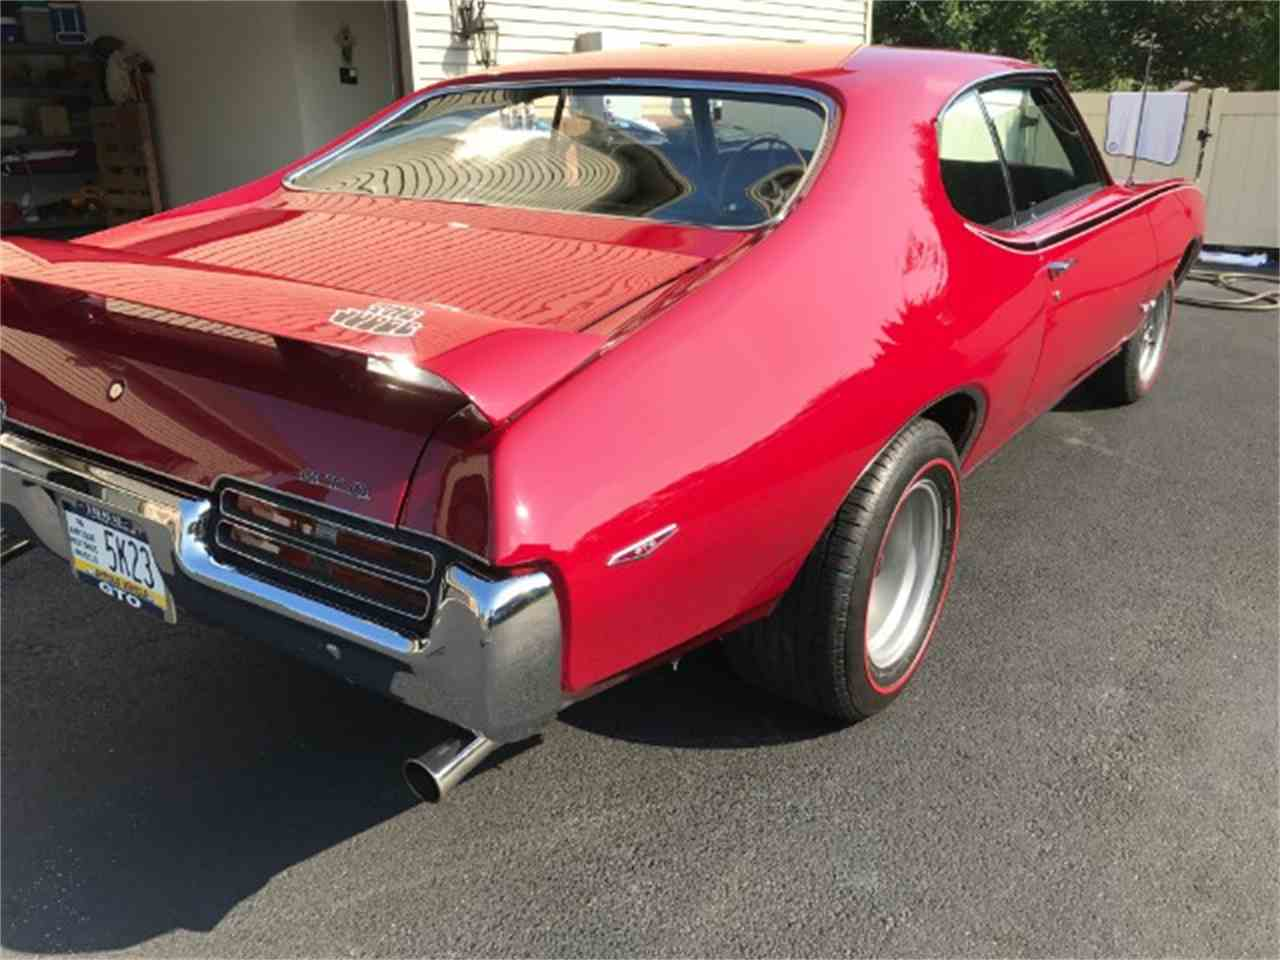 1969 Pontiac GTO (The Judge) for Sale | ClassicCars.com | CC-1077288